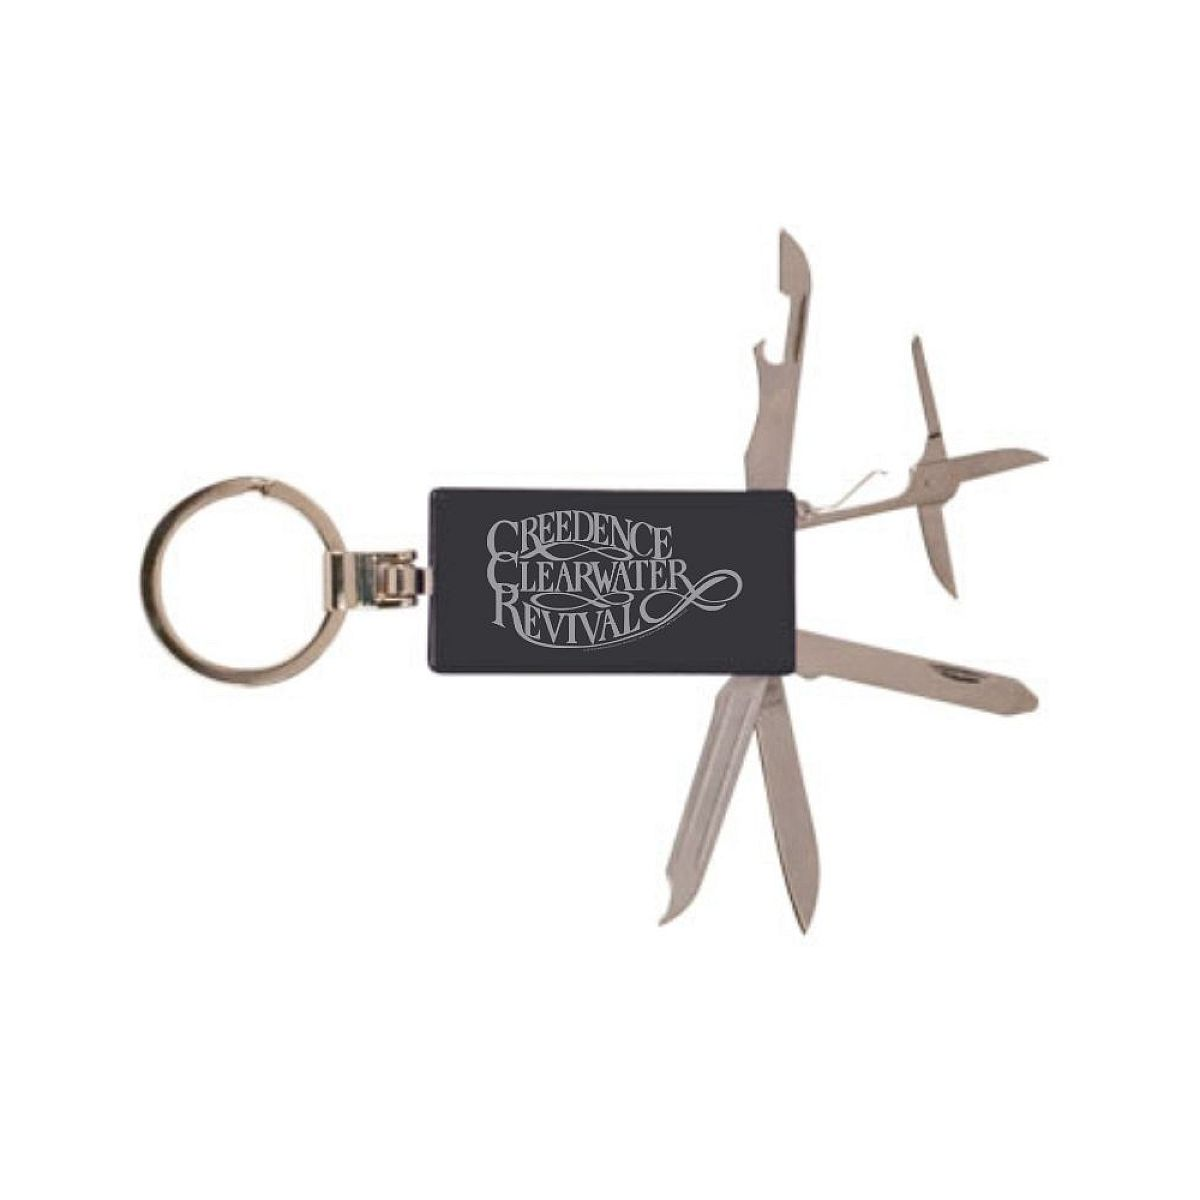 Scripted Laser Engraved Tool Keychain